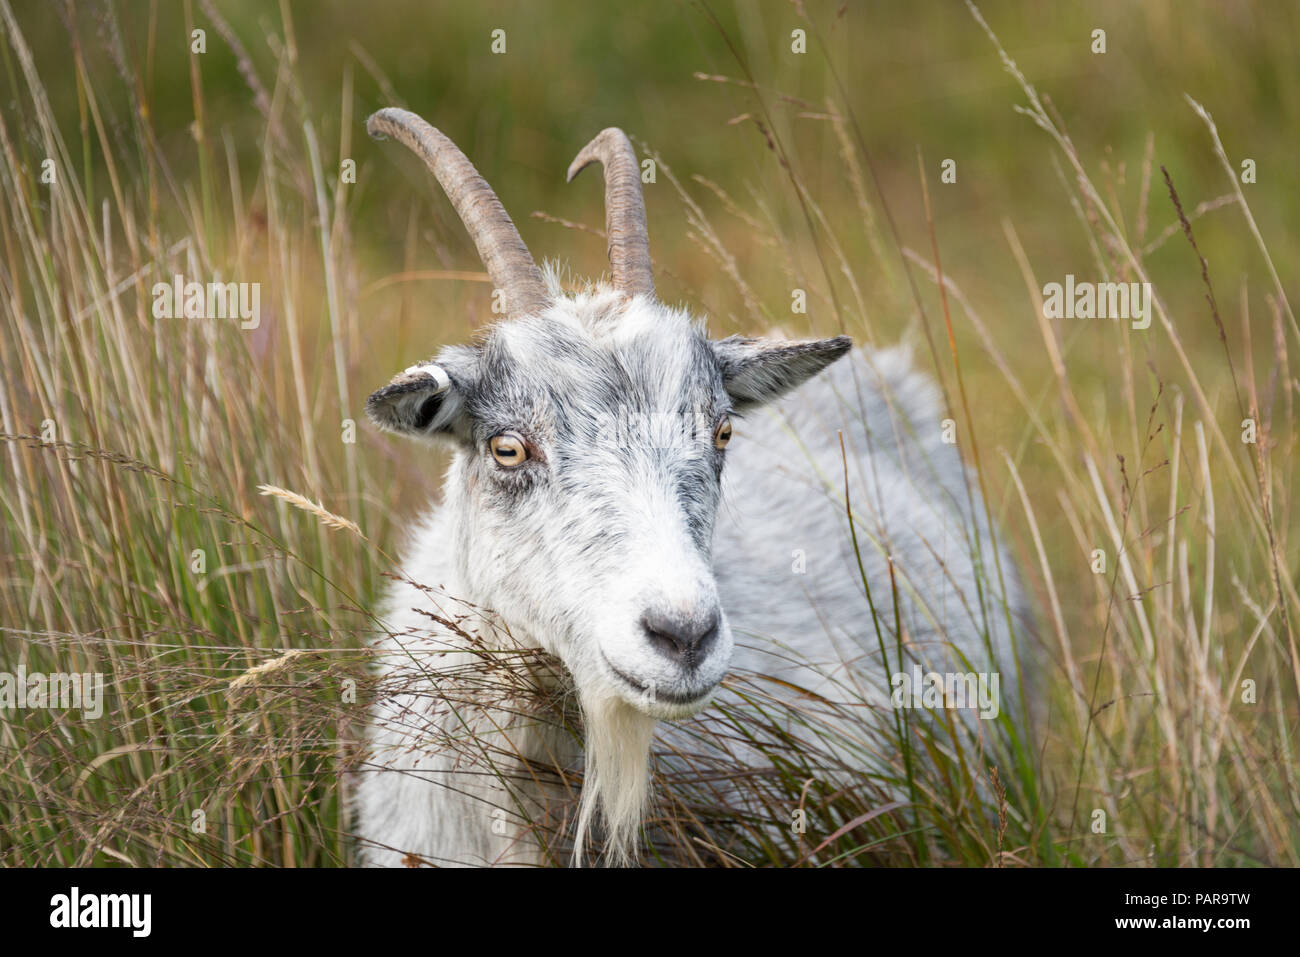 Wild goats at Galloway Forest Park, Dumfries and Galloway, Scotland - Stock Image